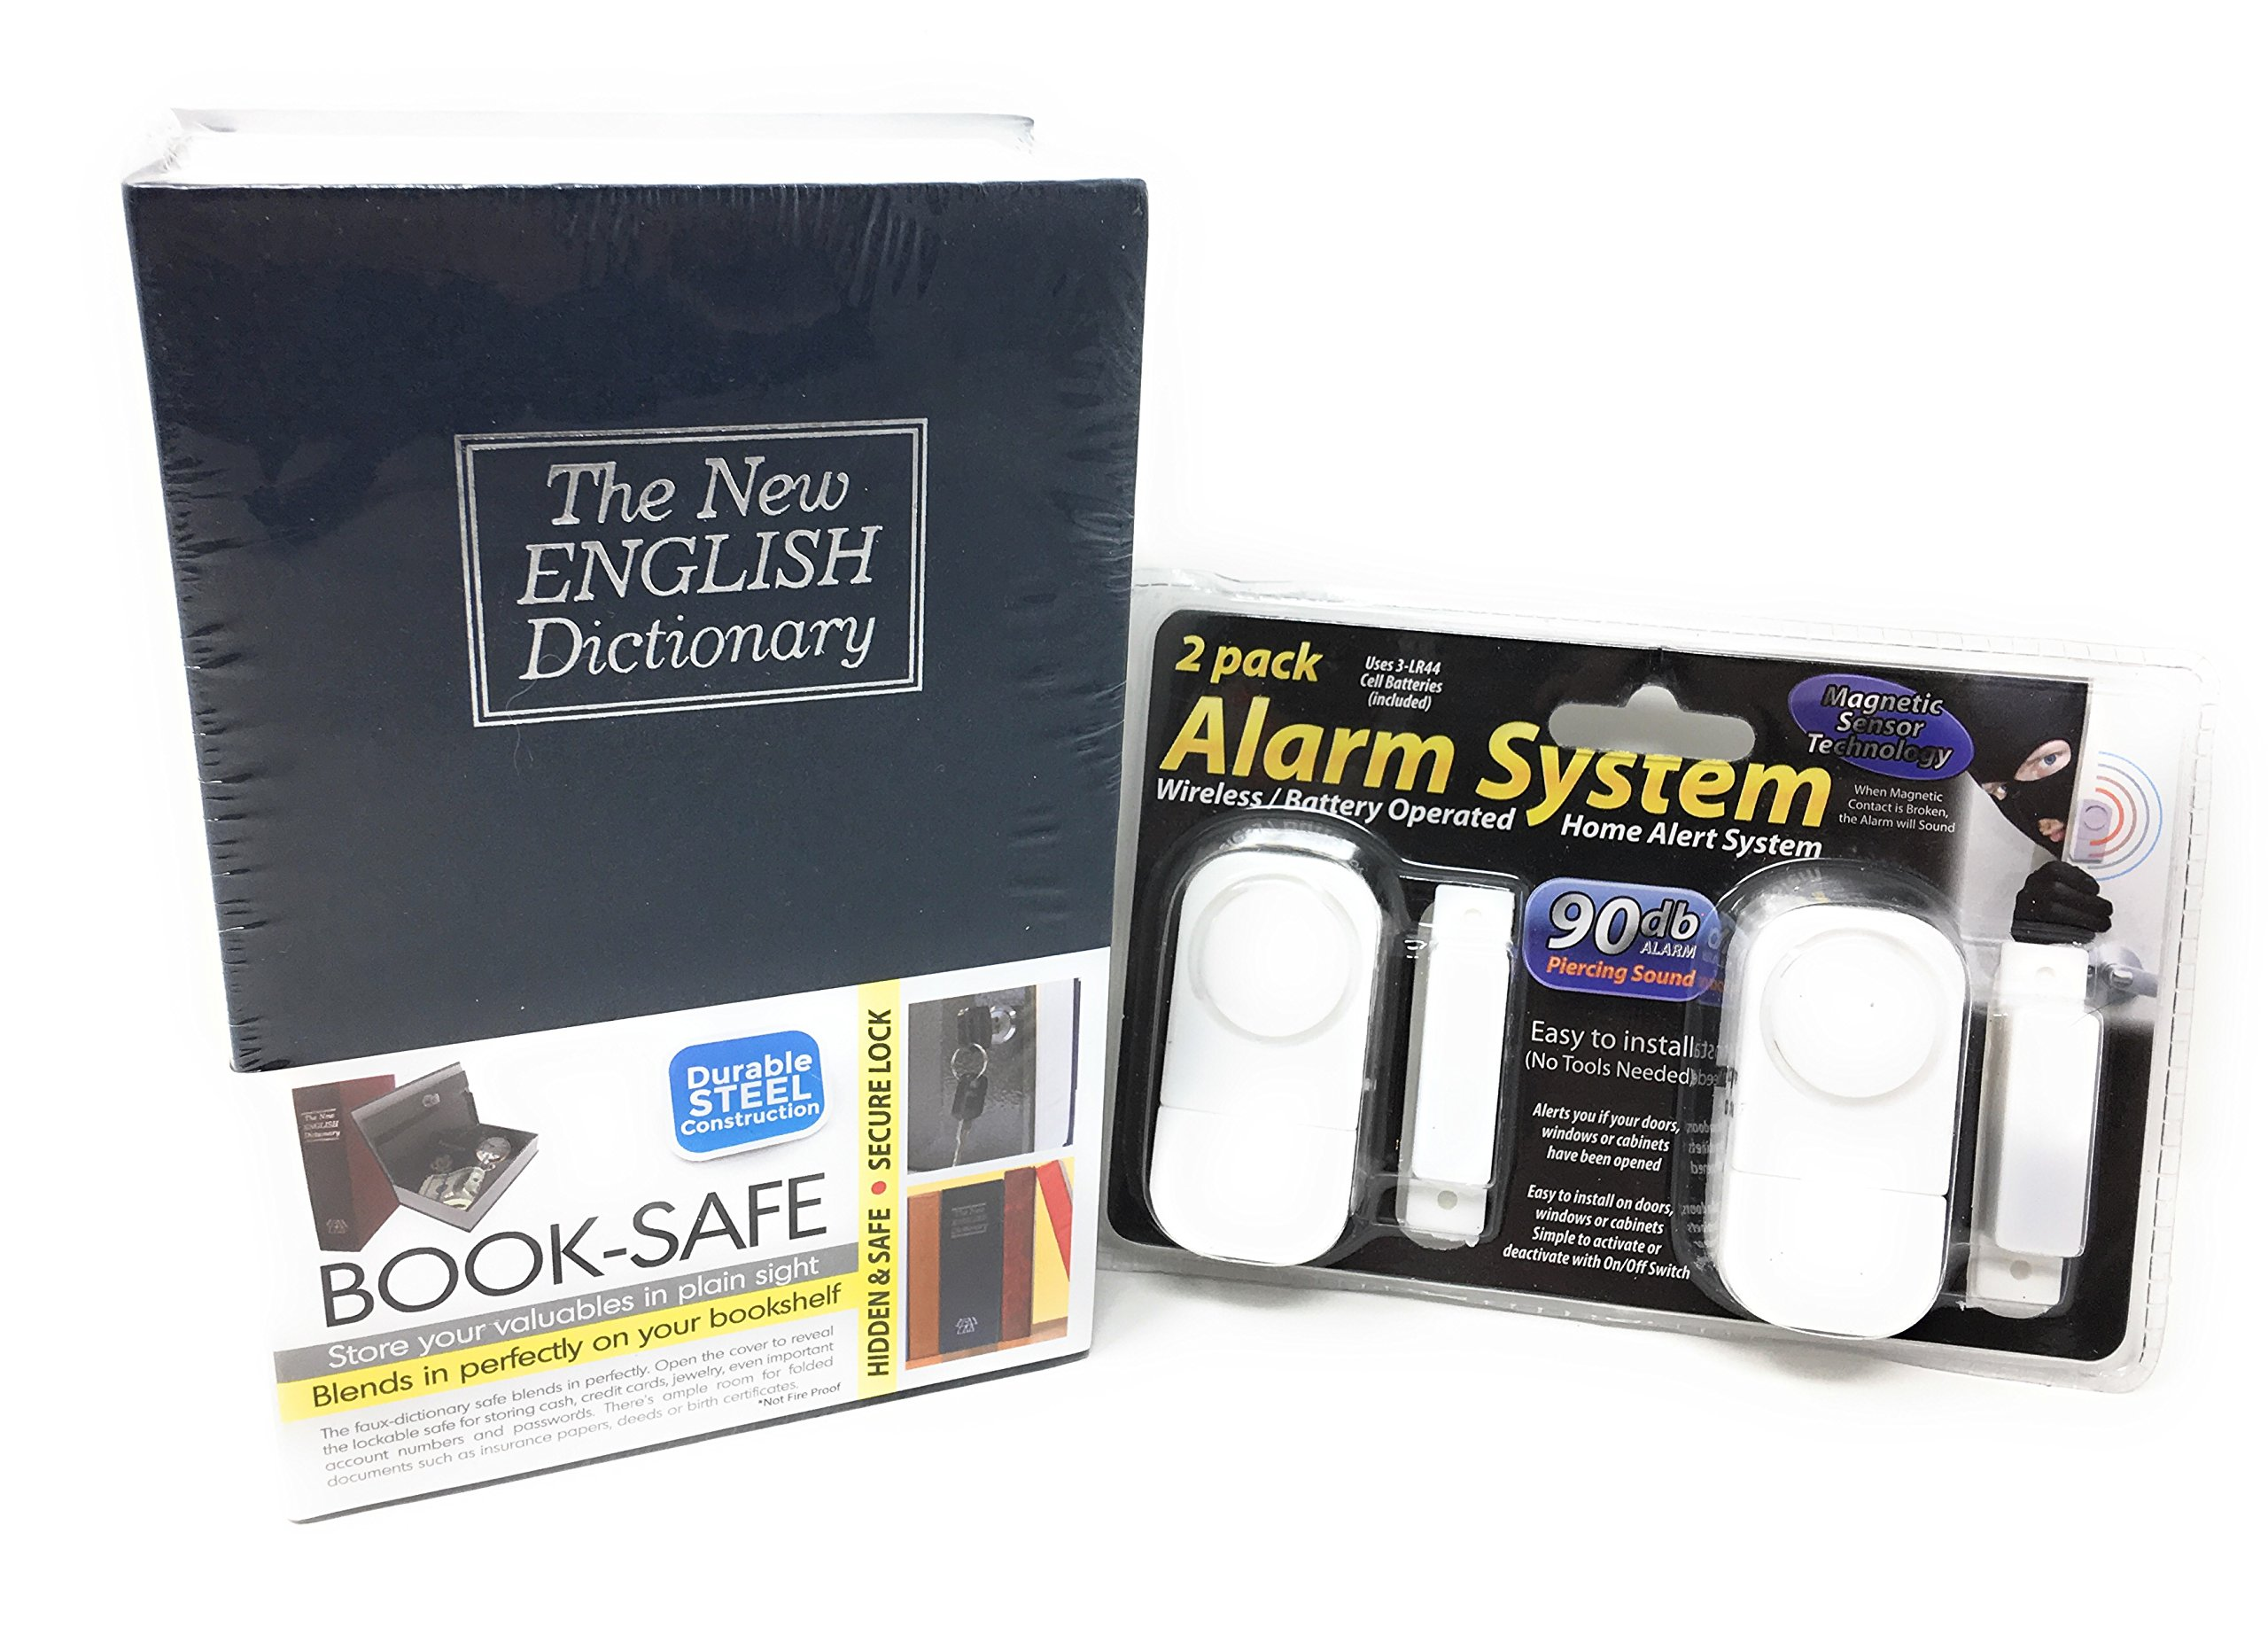 Must Have Home & Office Security Bundle: Durable Steel Construction Book-Safe w/ Secure Lock (Safe Disguised As New English Dictionary) & 2-Pack Wireless Home Alarm System (Easy to Install)